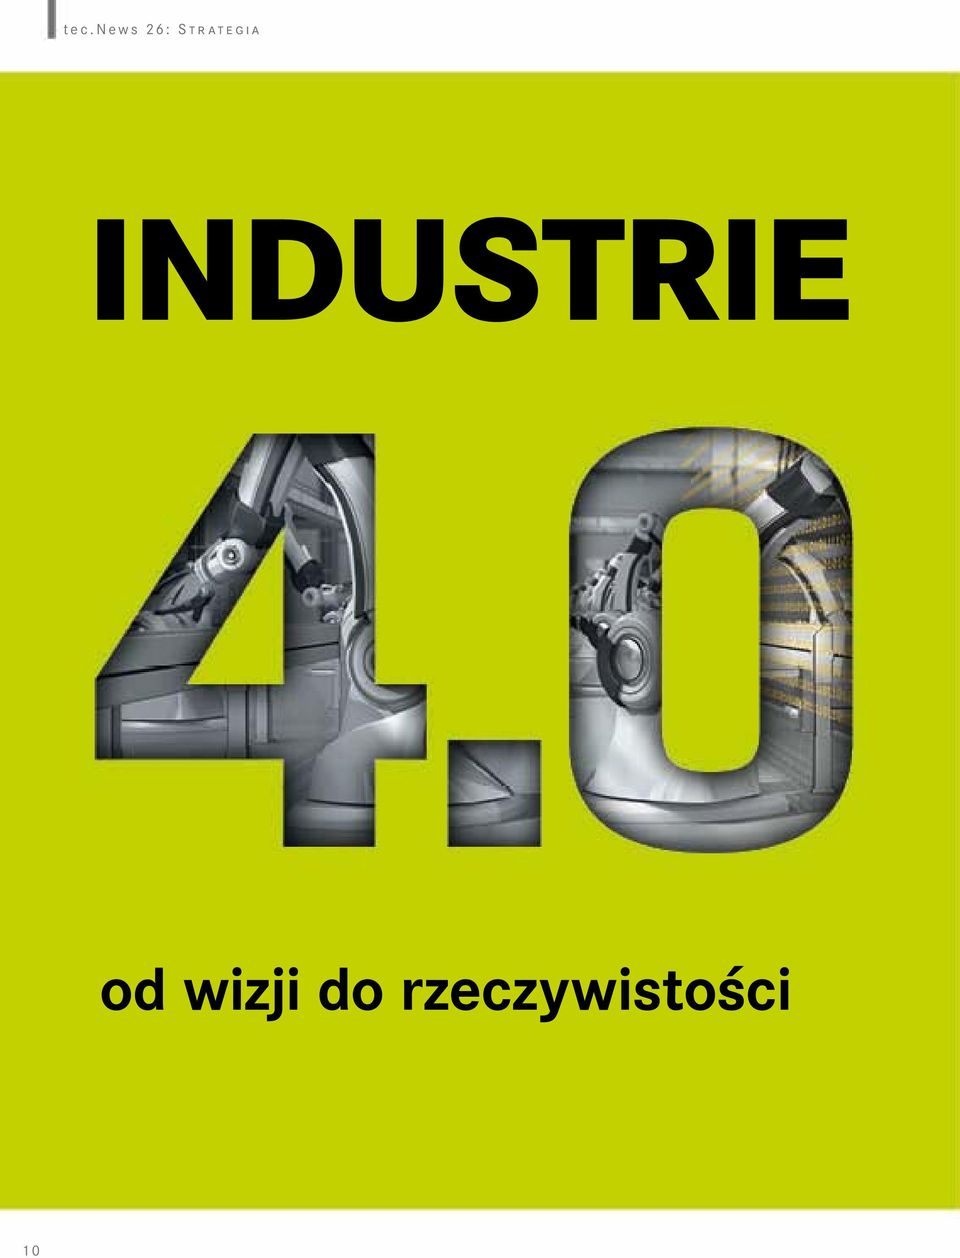 IndustrIE od